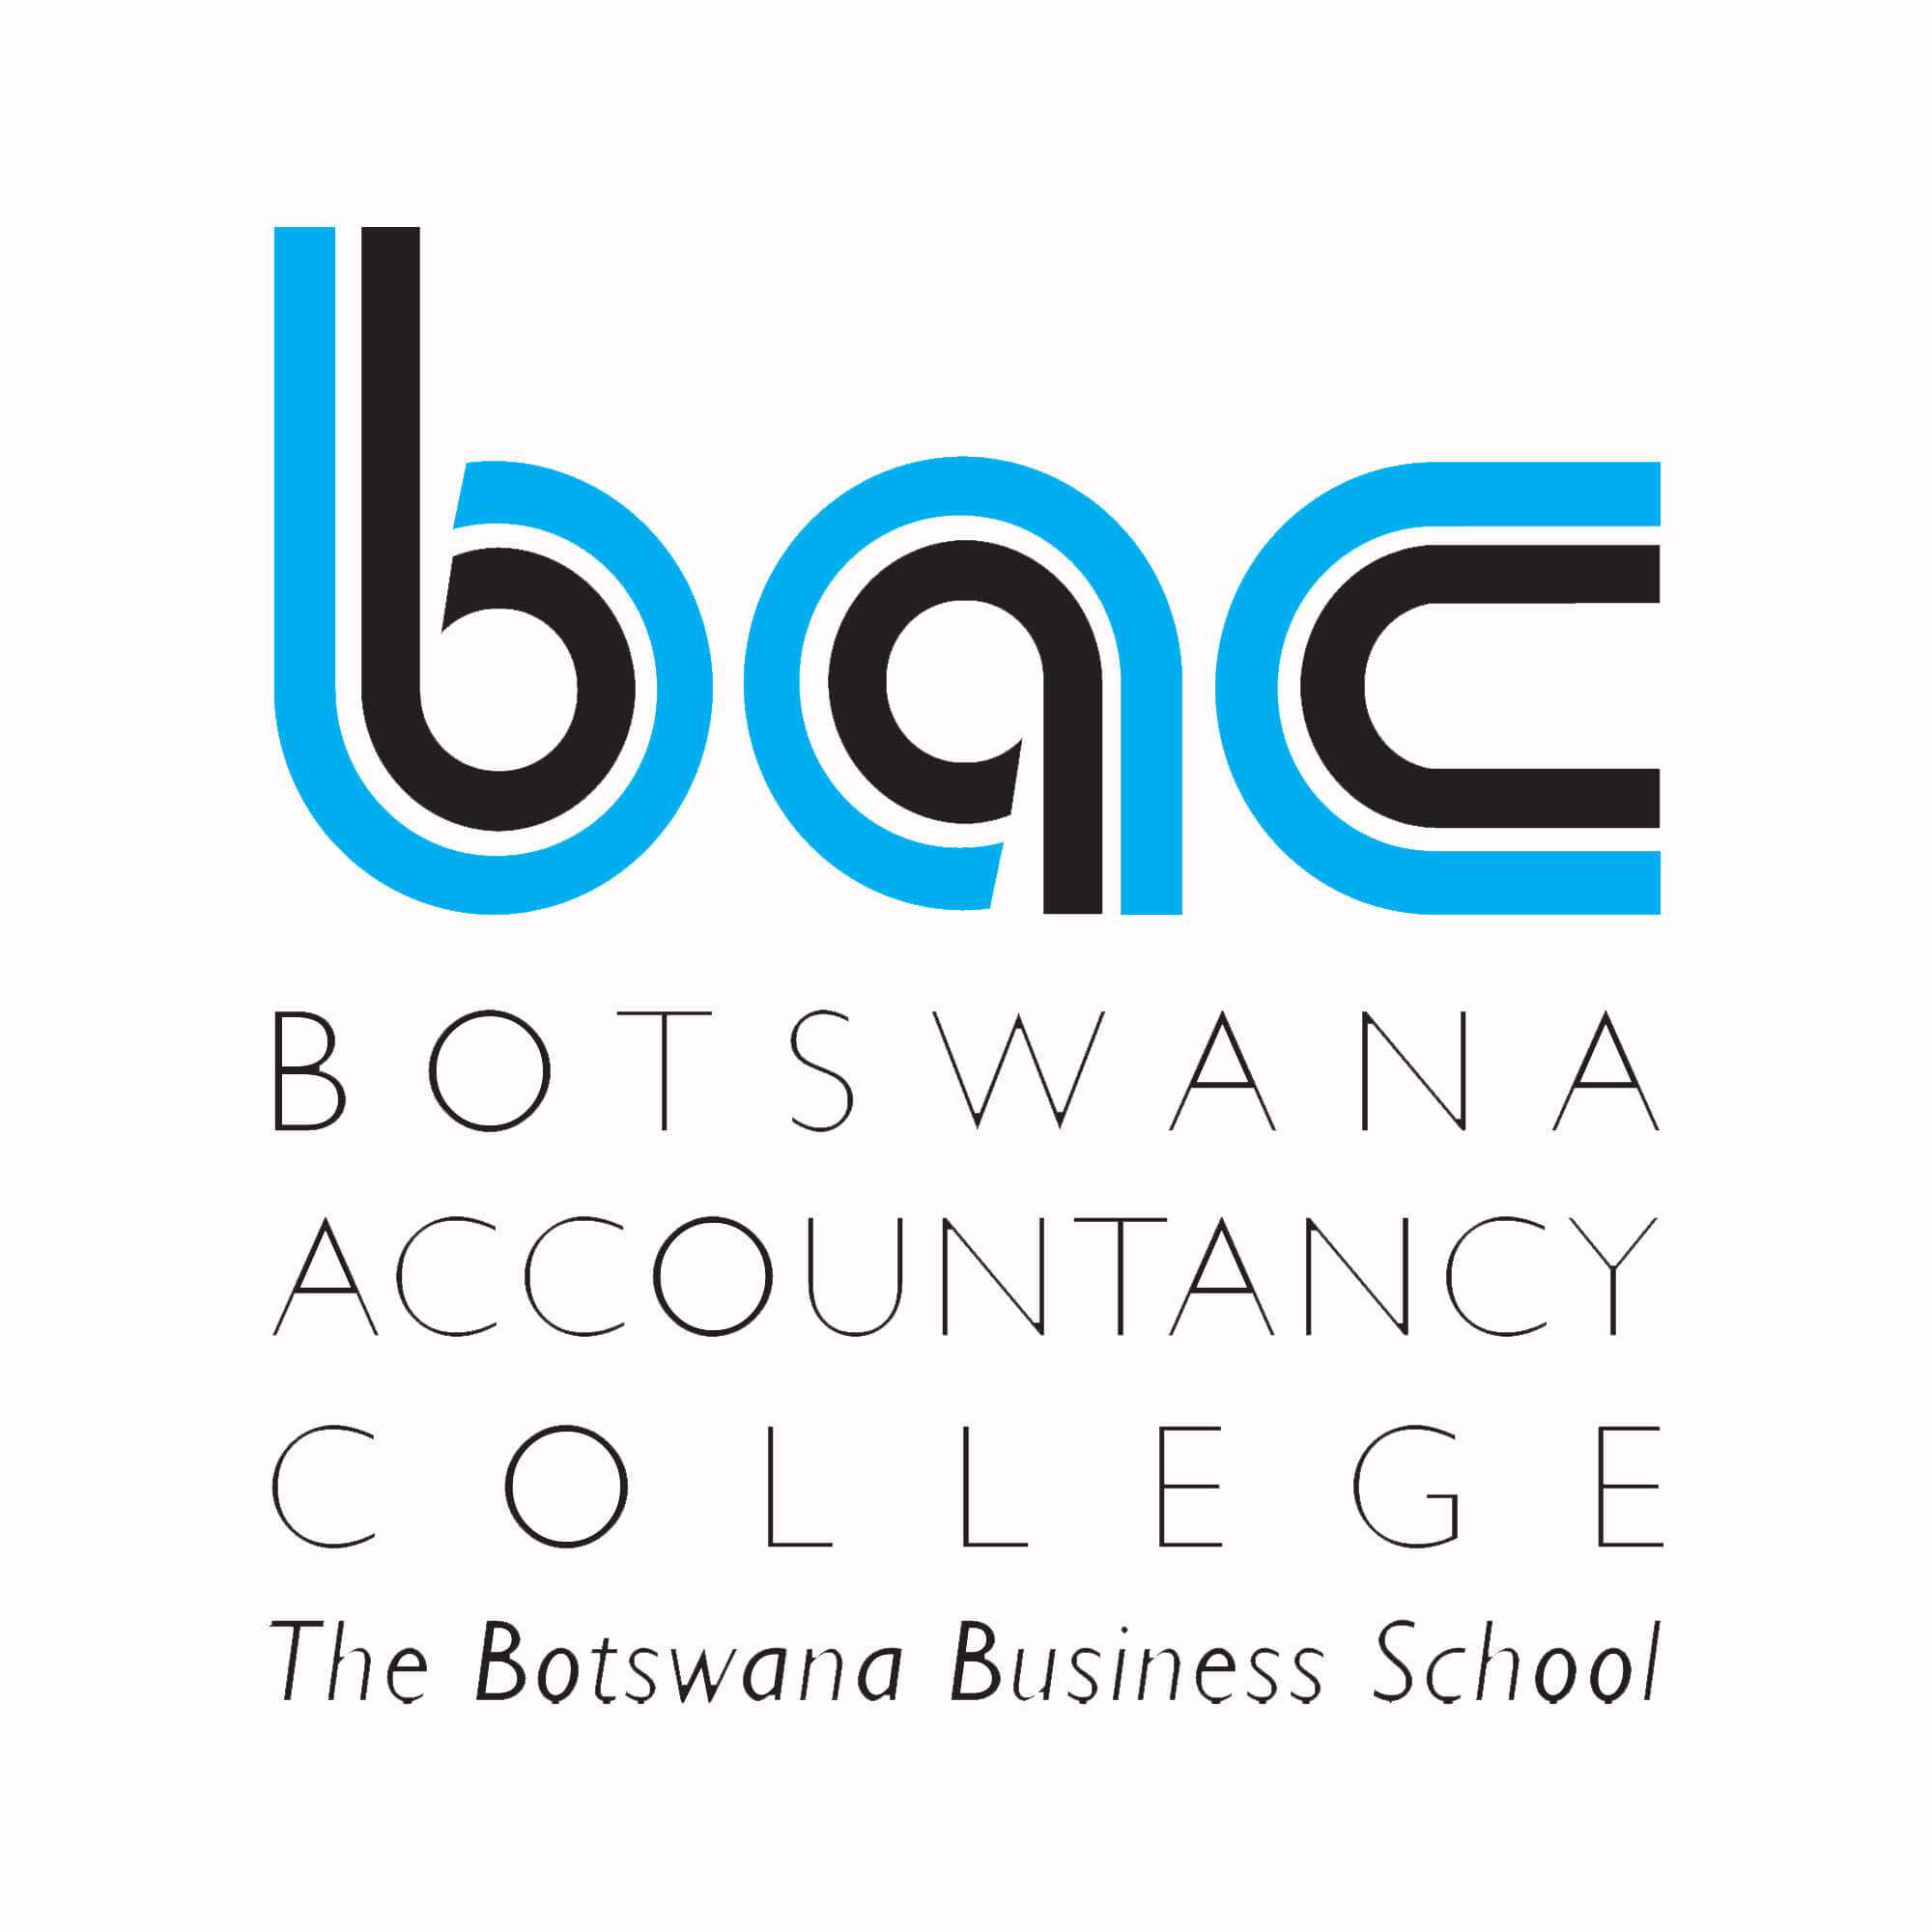 Botswana Accountancy College logo